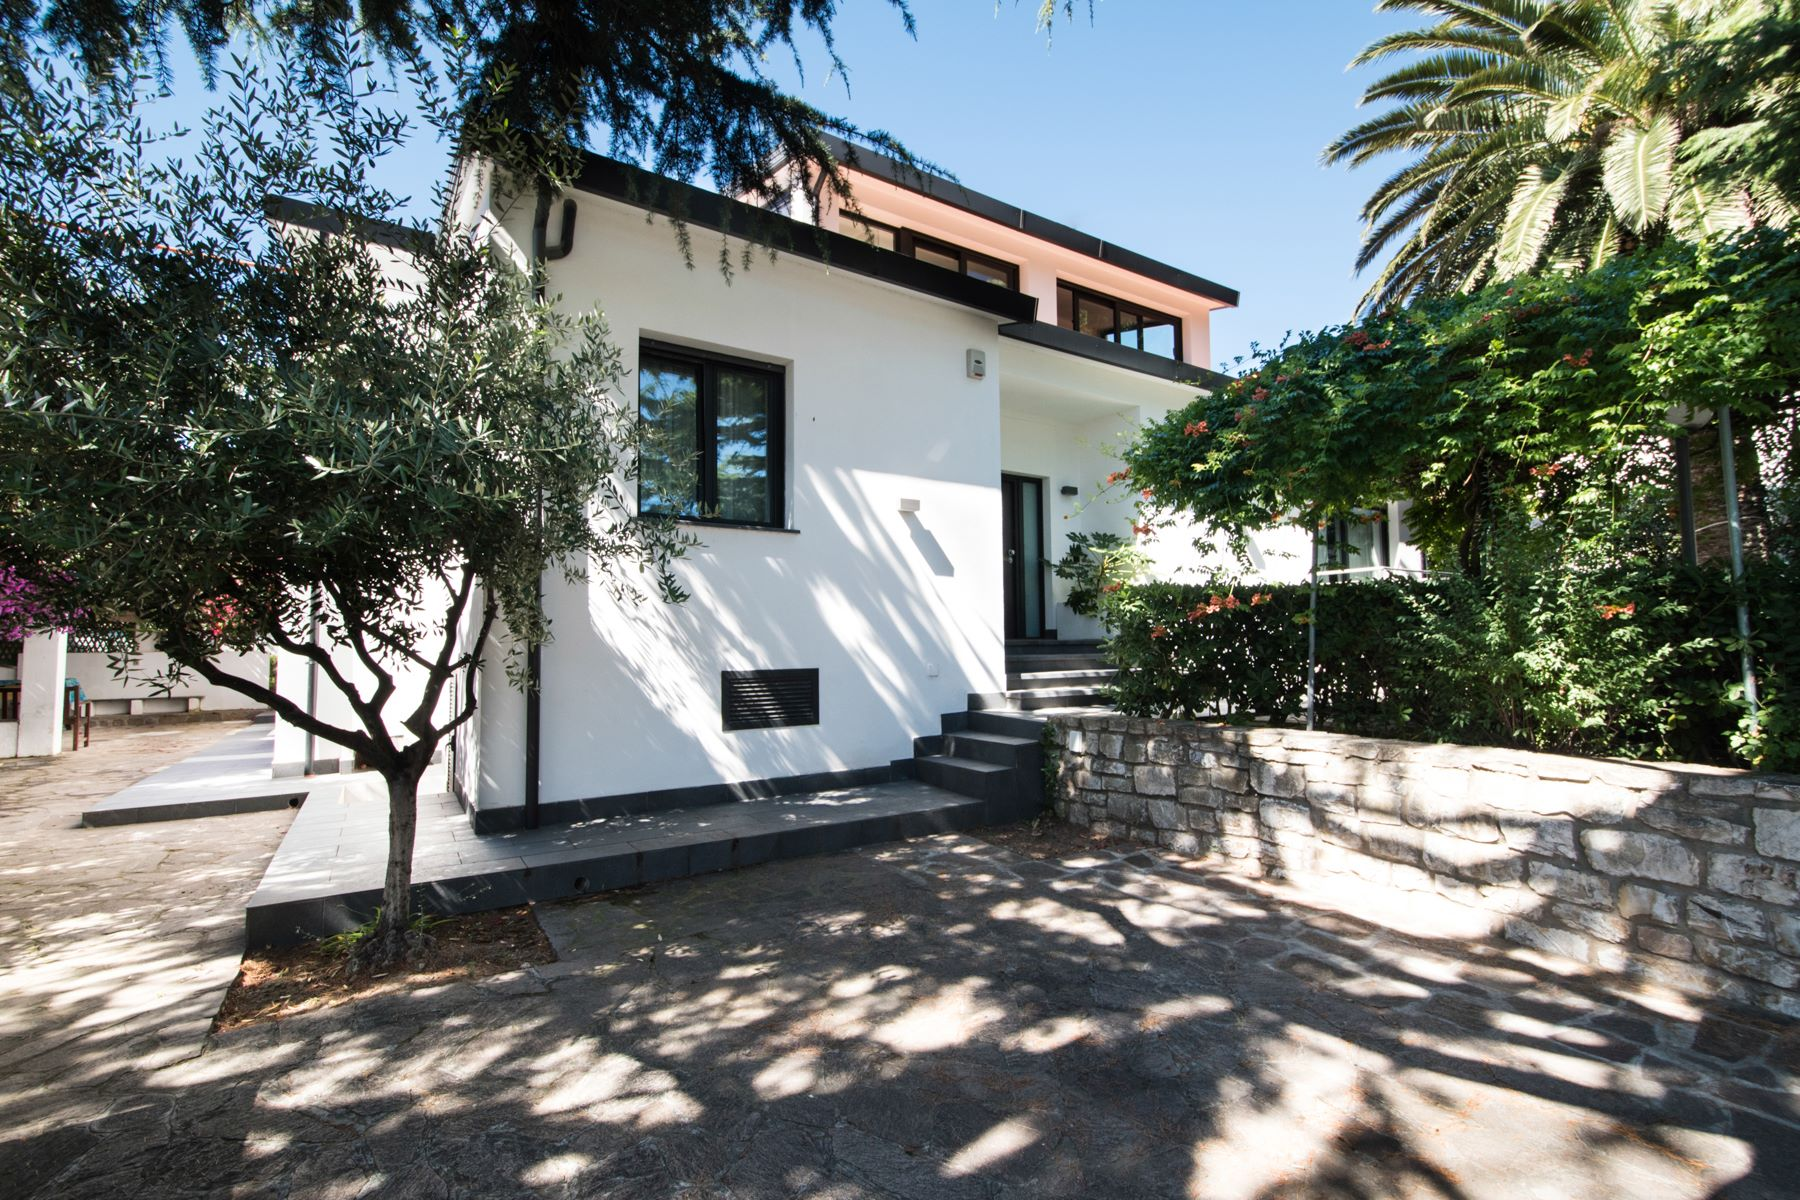 Single Family Home for Sale at Discreet villa with garden on Elba Via Murzi Marciana Marina, 57033 Italy